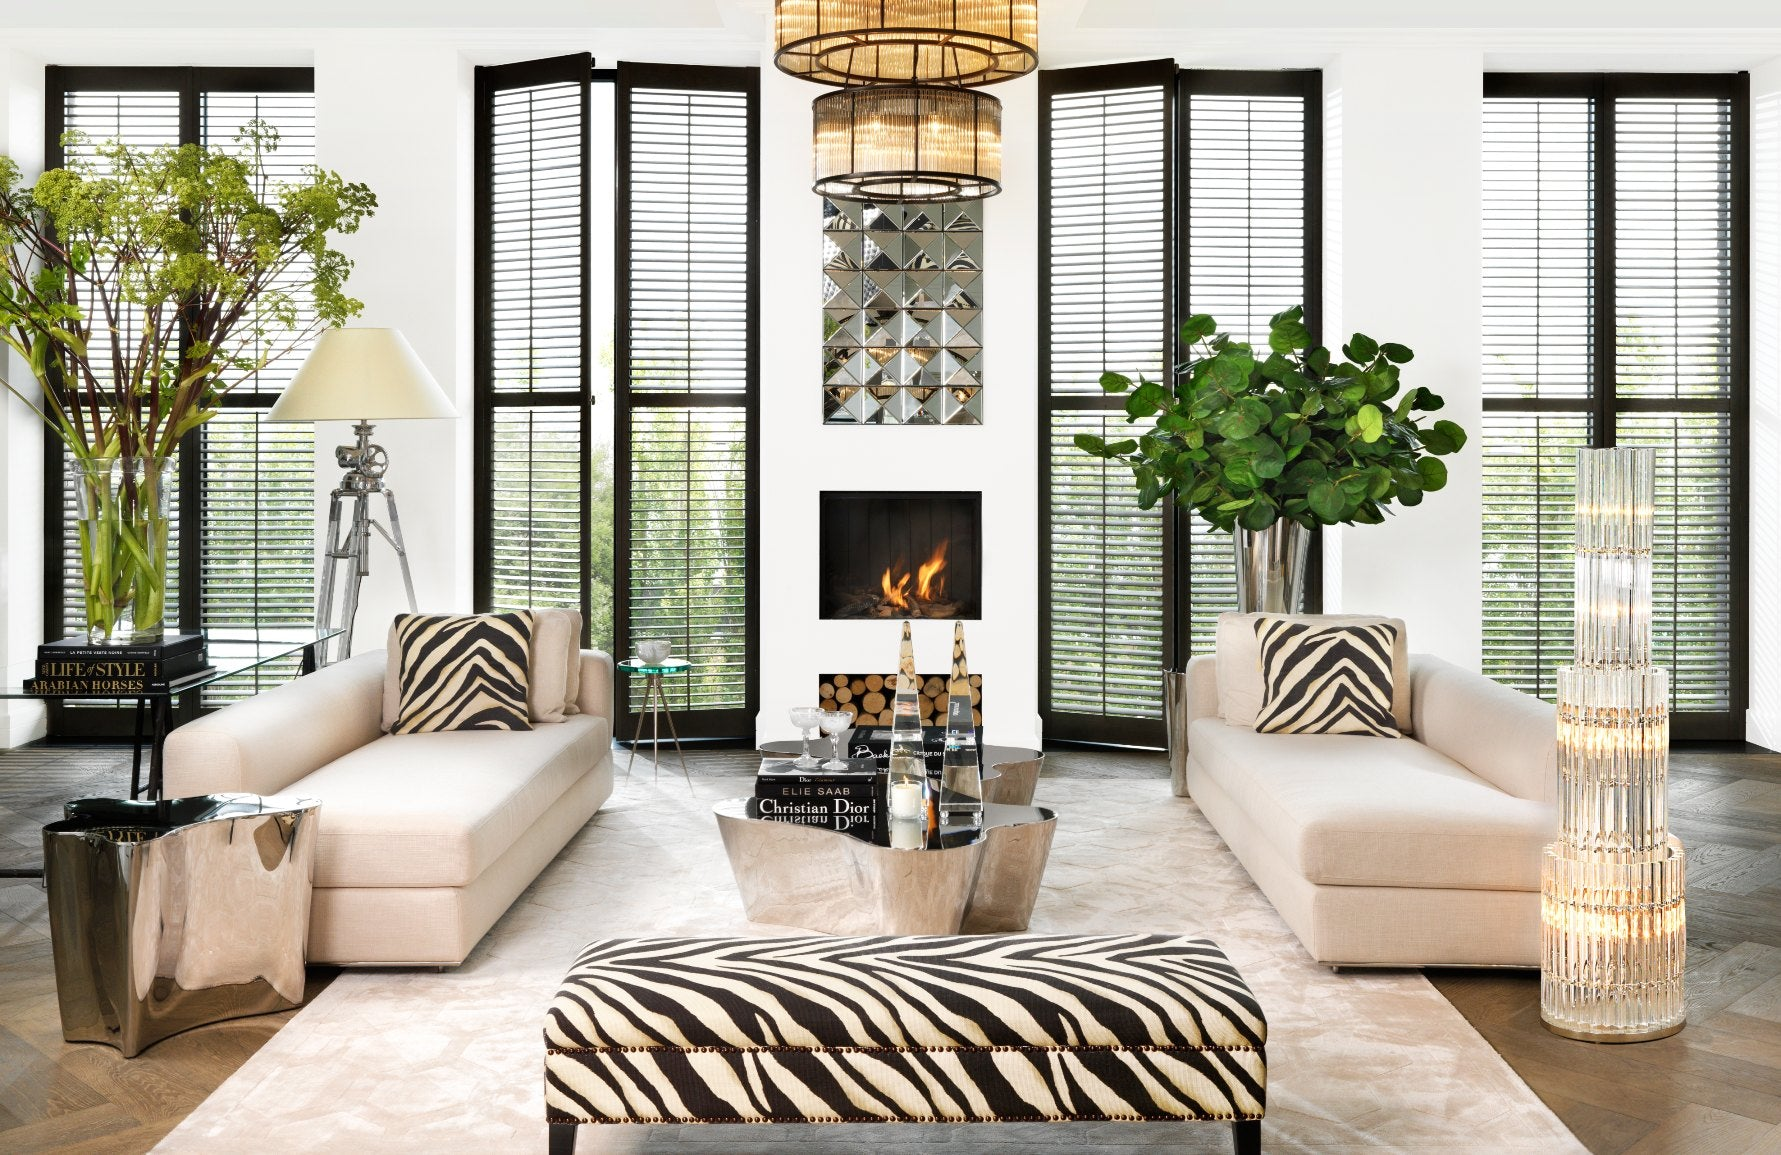 How to Decorate With Animal Print In Your Home Interior | Zebra Print Furniture | LuxDeco.com Style Guide